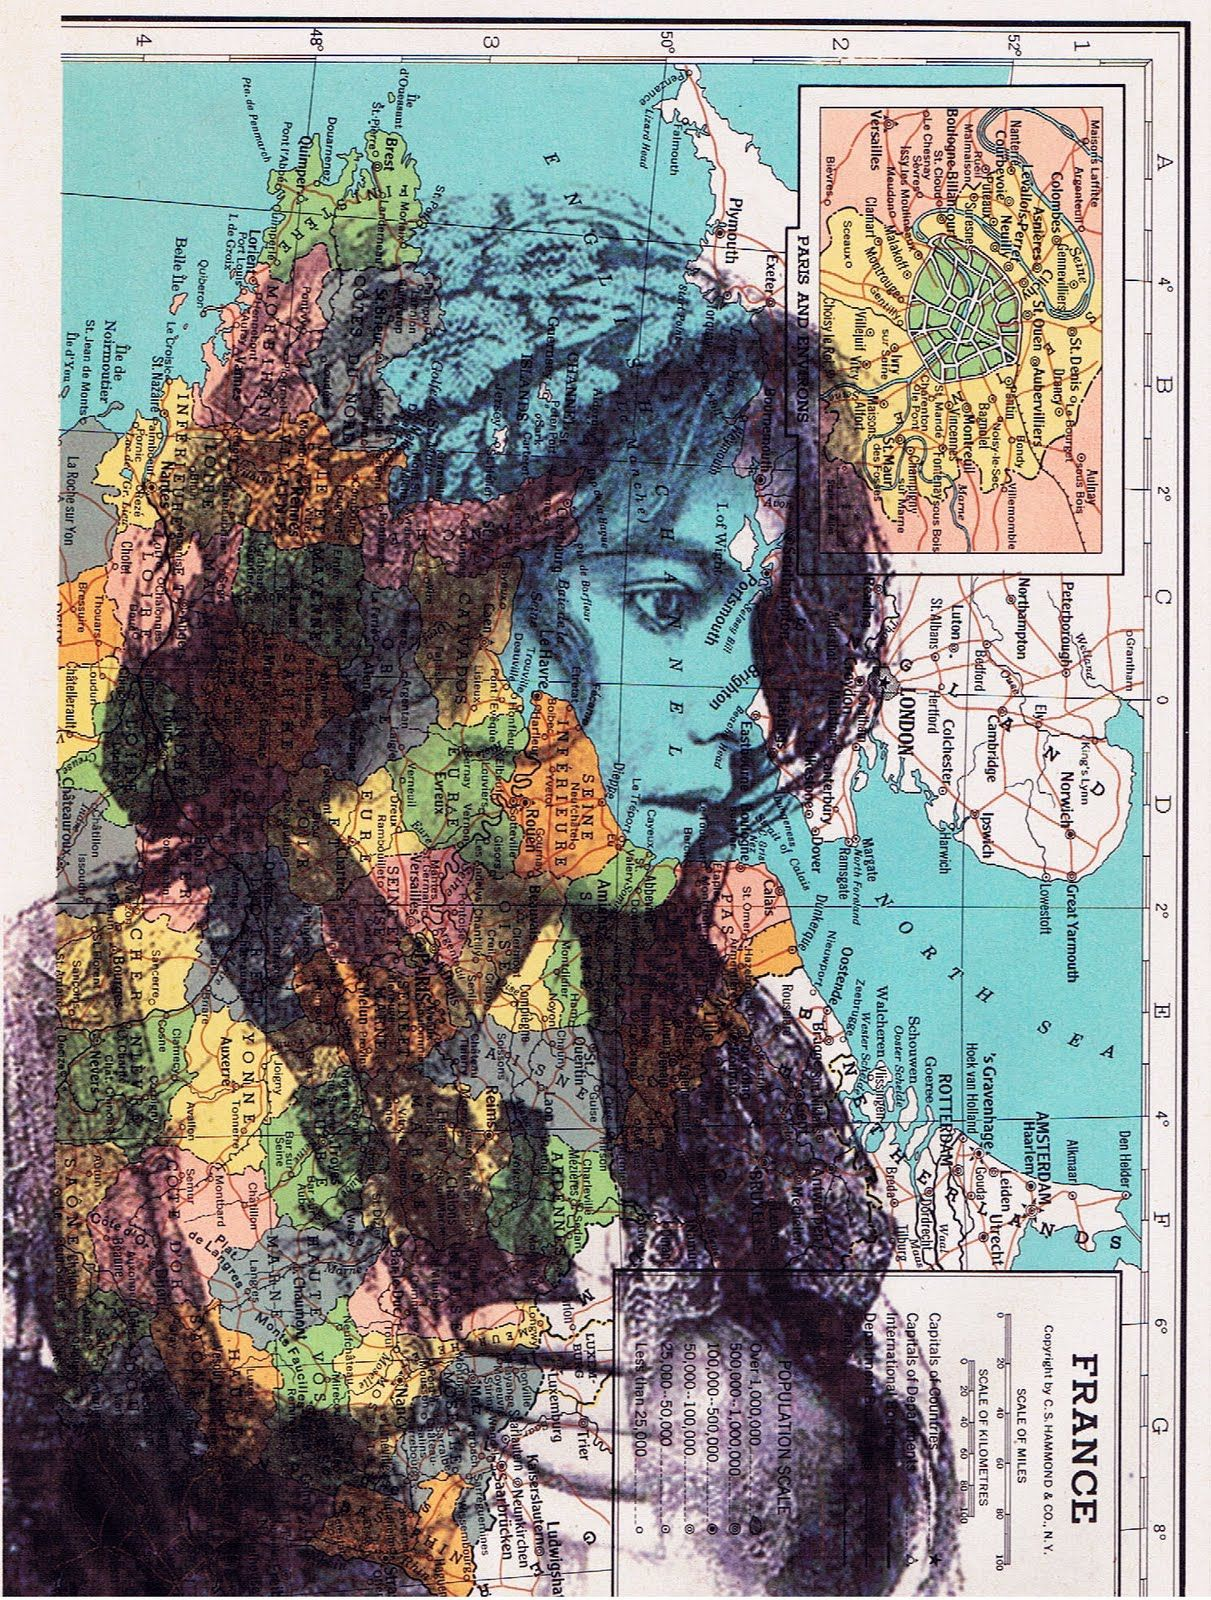 collage art on old maps | JACKIE BASSETT COLLAGE ART ...